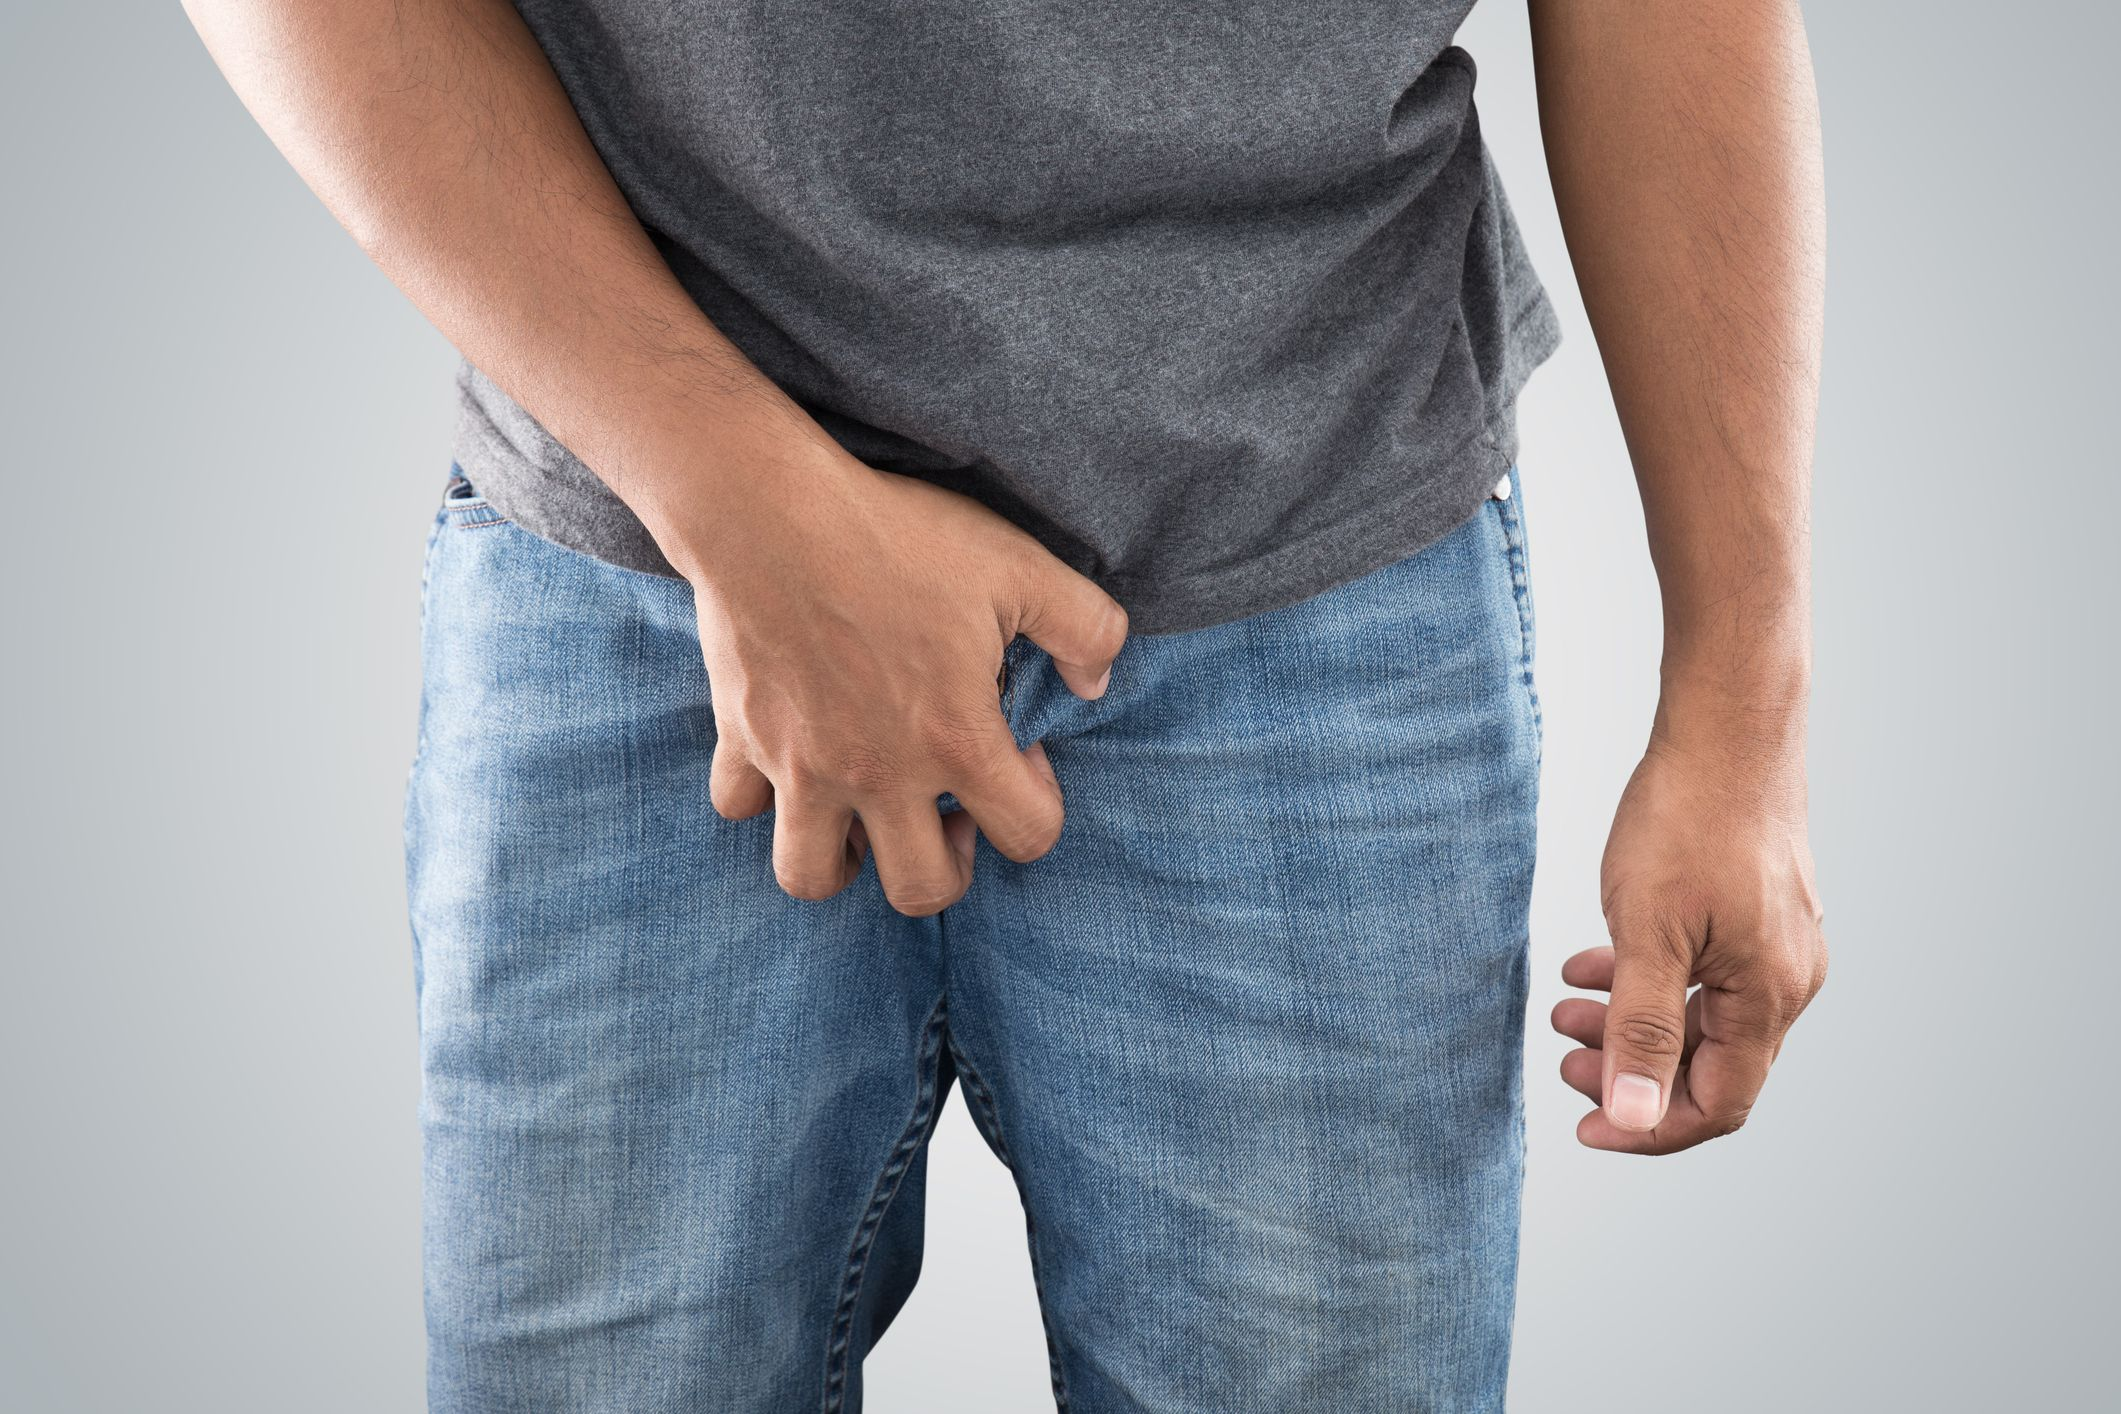 Itchy penis? It's not always an STI